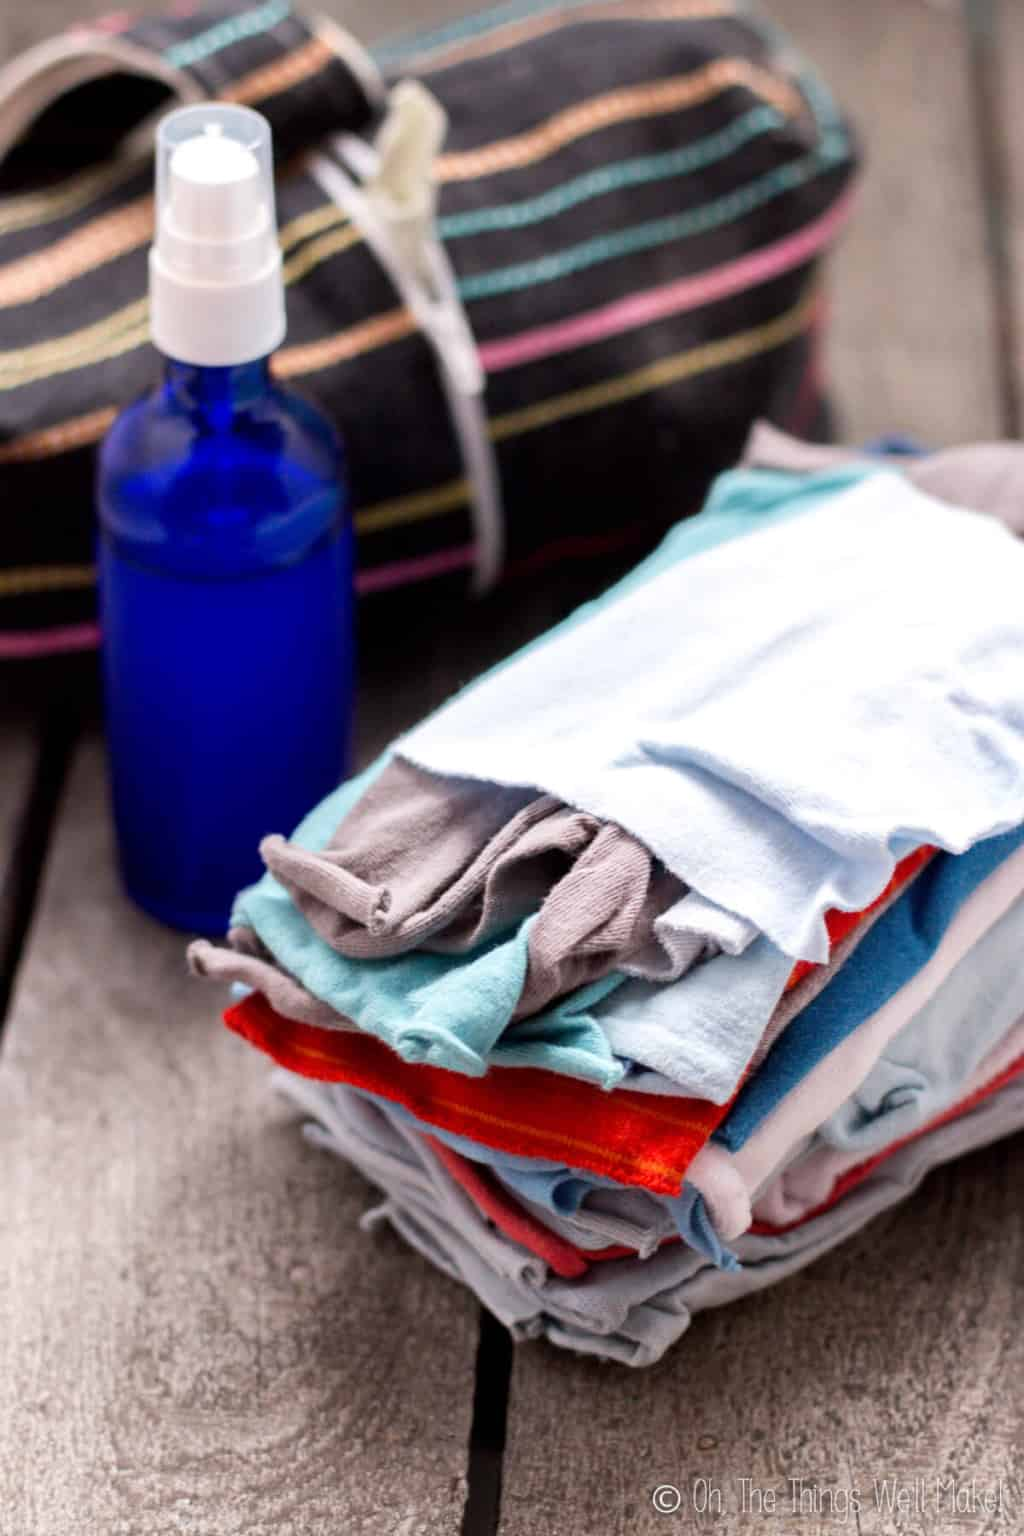 A stack of colorful homemade cloth wipes in front of a blue glass bottle filled with wipe solution.